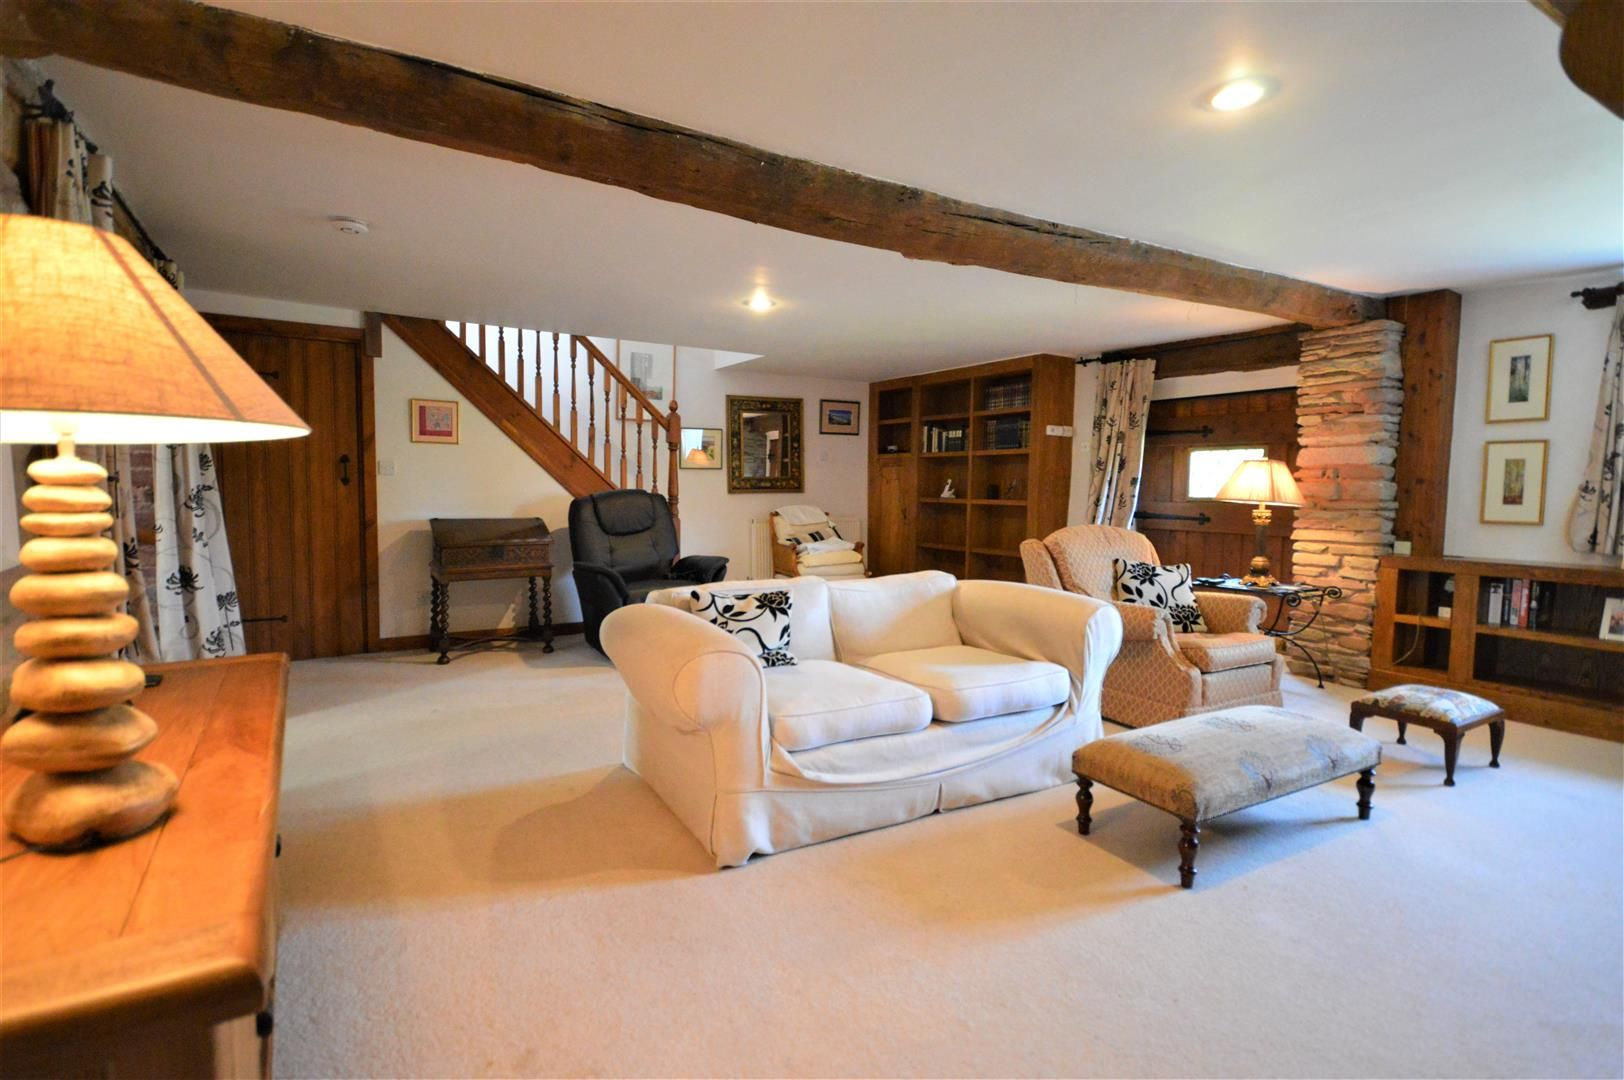 3 bed barn-conversion for sale in Stoke Prior  - Property Image 2